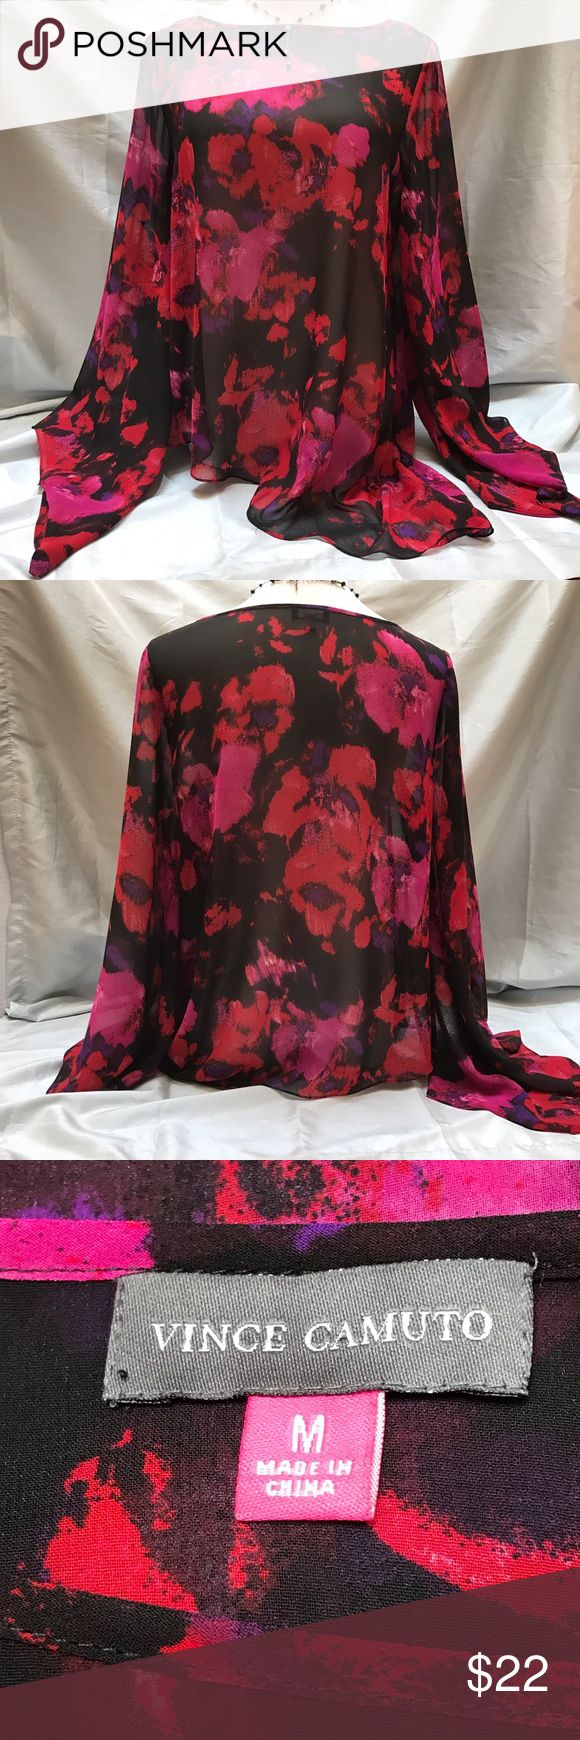 "VINCE CAMUTO Bold Batwing Flowy Chiffon Floral Top Make a statement in this beautiful, bold, batwing silhouette blouse in black chiffon with red/pink floral print. Excellent pre-loved collection. Length: 24"". Vince Camuto Tops"